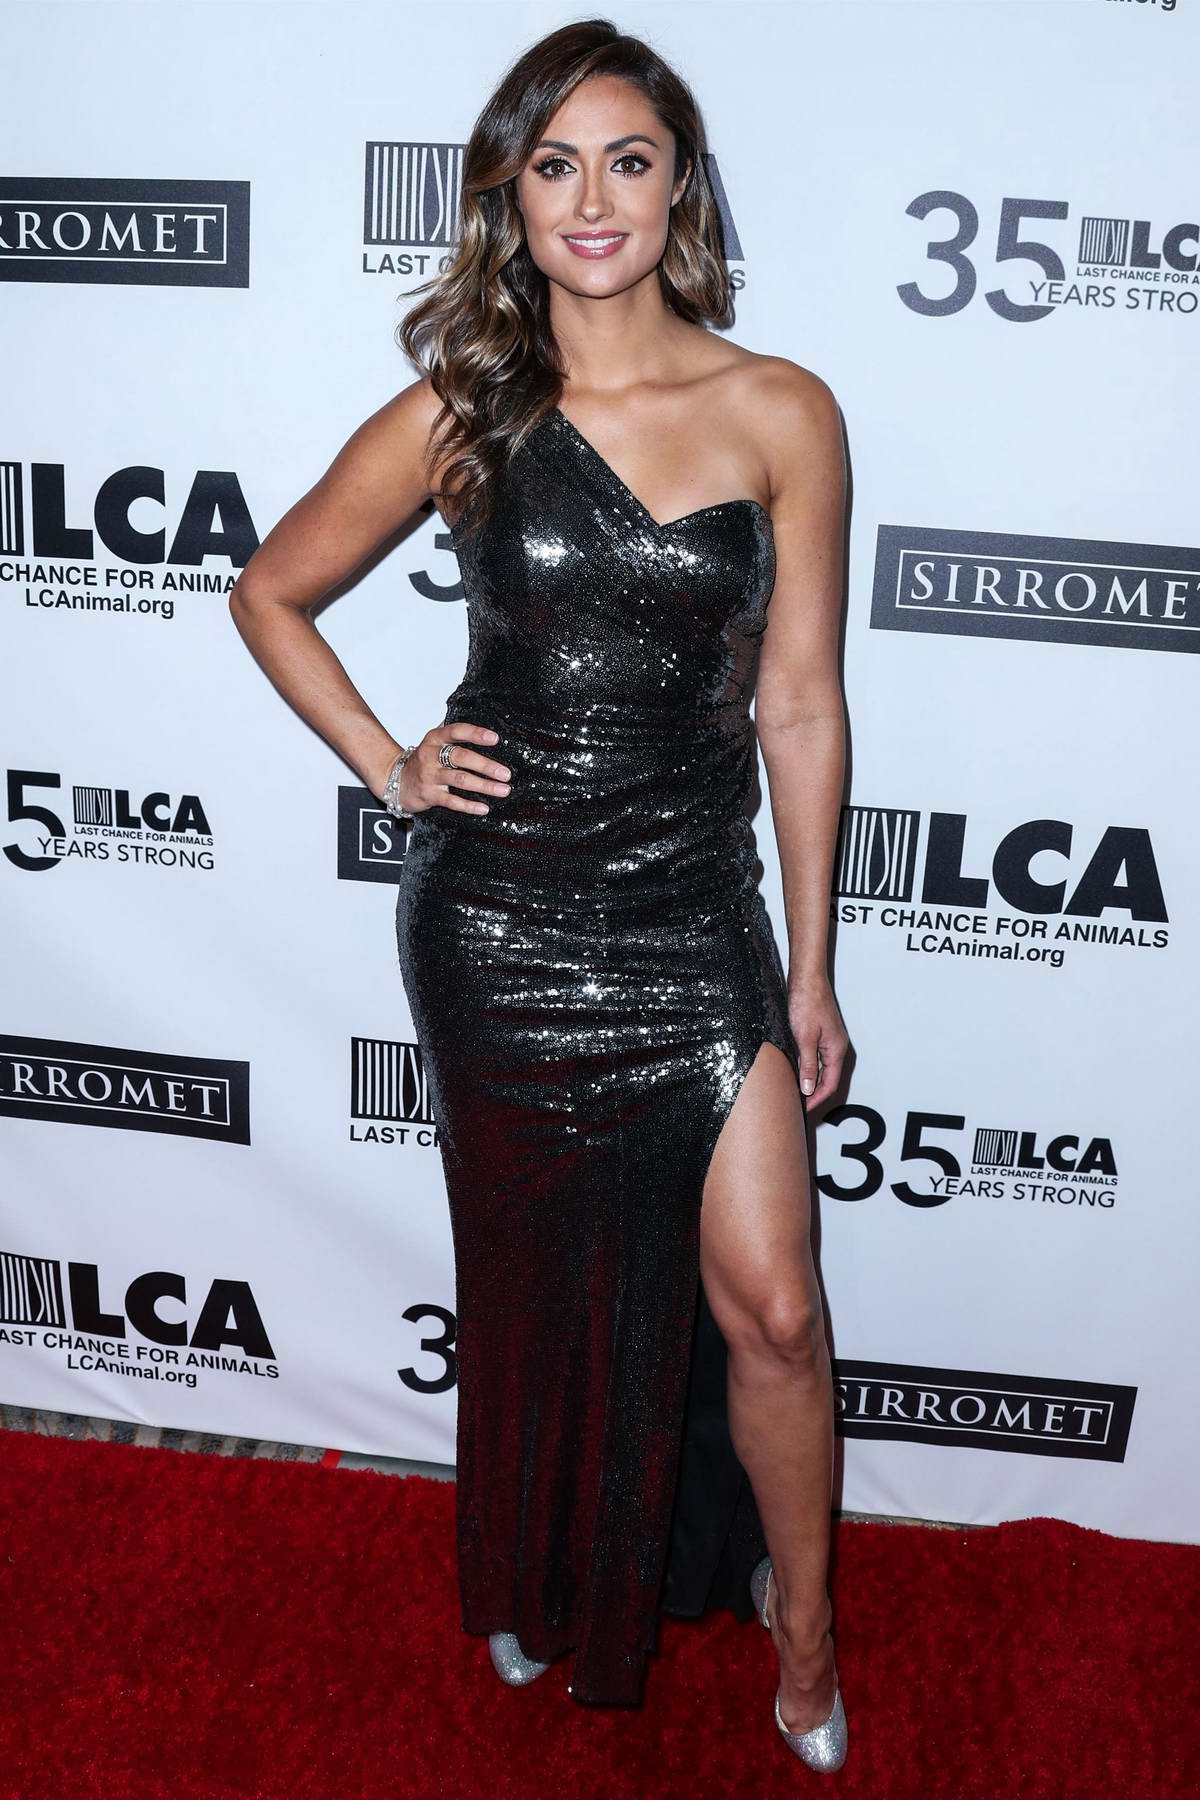 Katie Cleary attends the 35th Anniversary 'Last Chance for Animals' Gala at The Beverly Hilton in Los Angeles